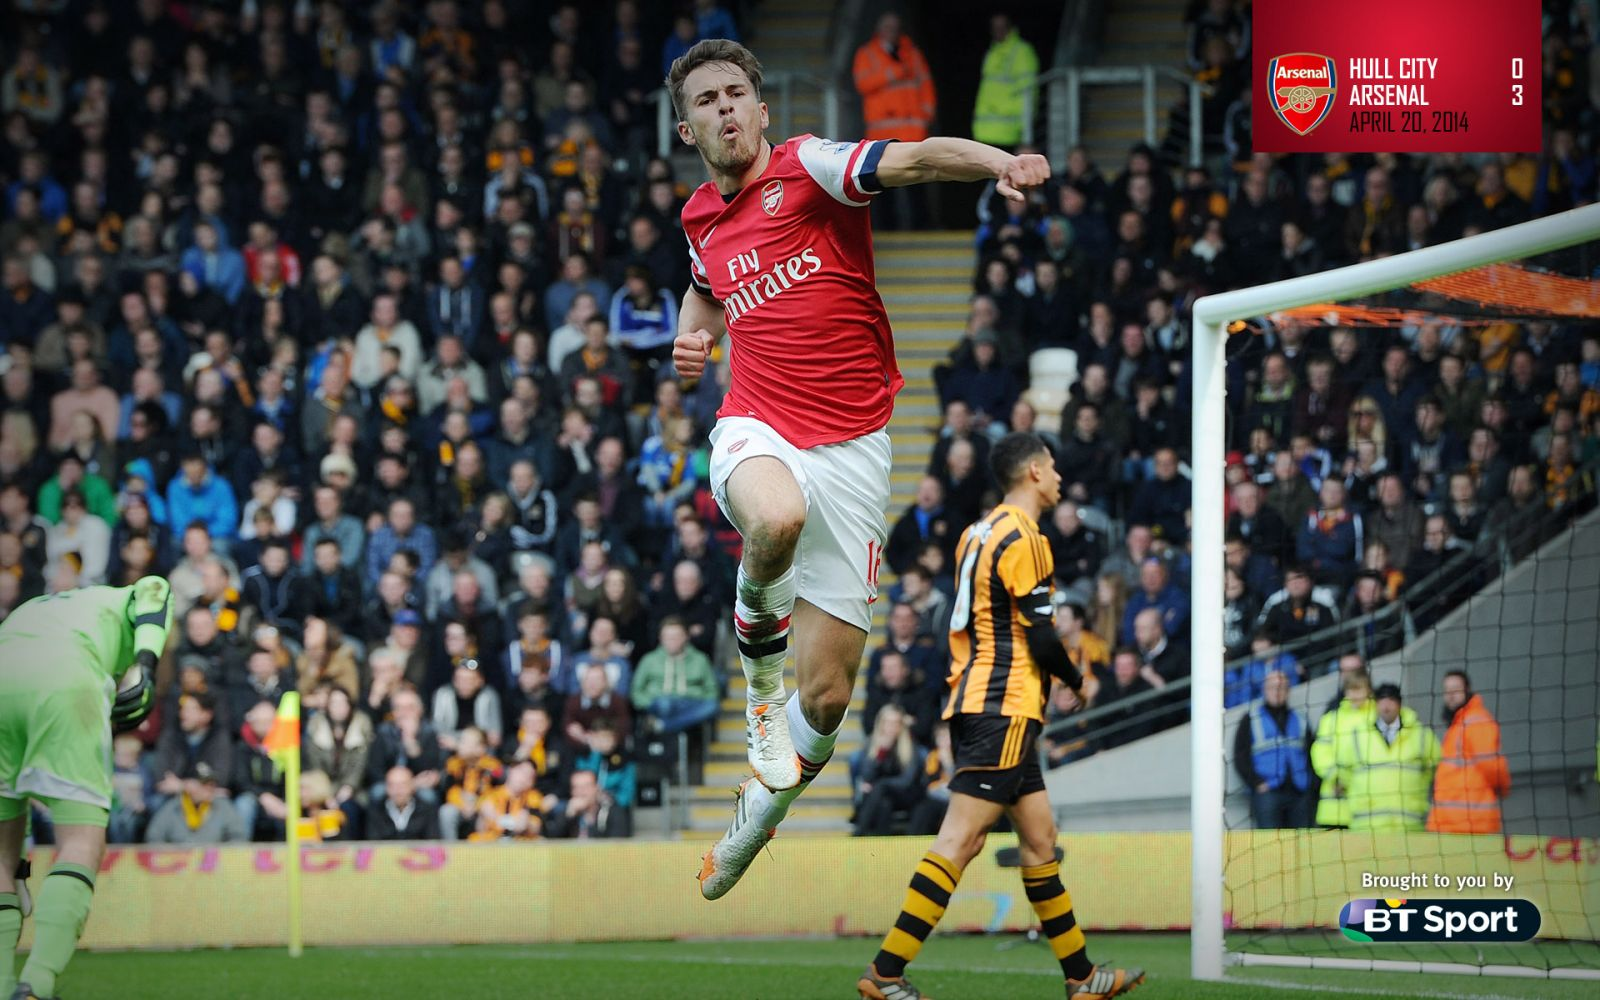 April 20, 2014 - Hull City 0-3 Arsenal